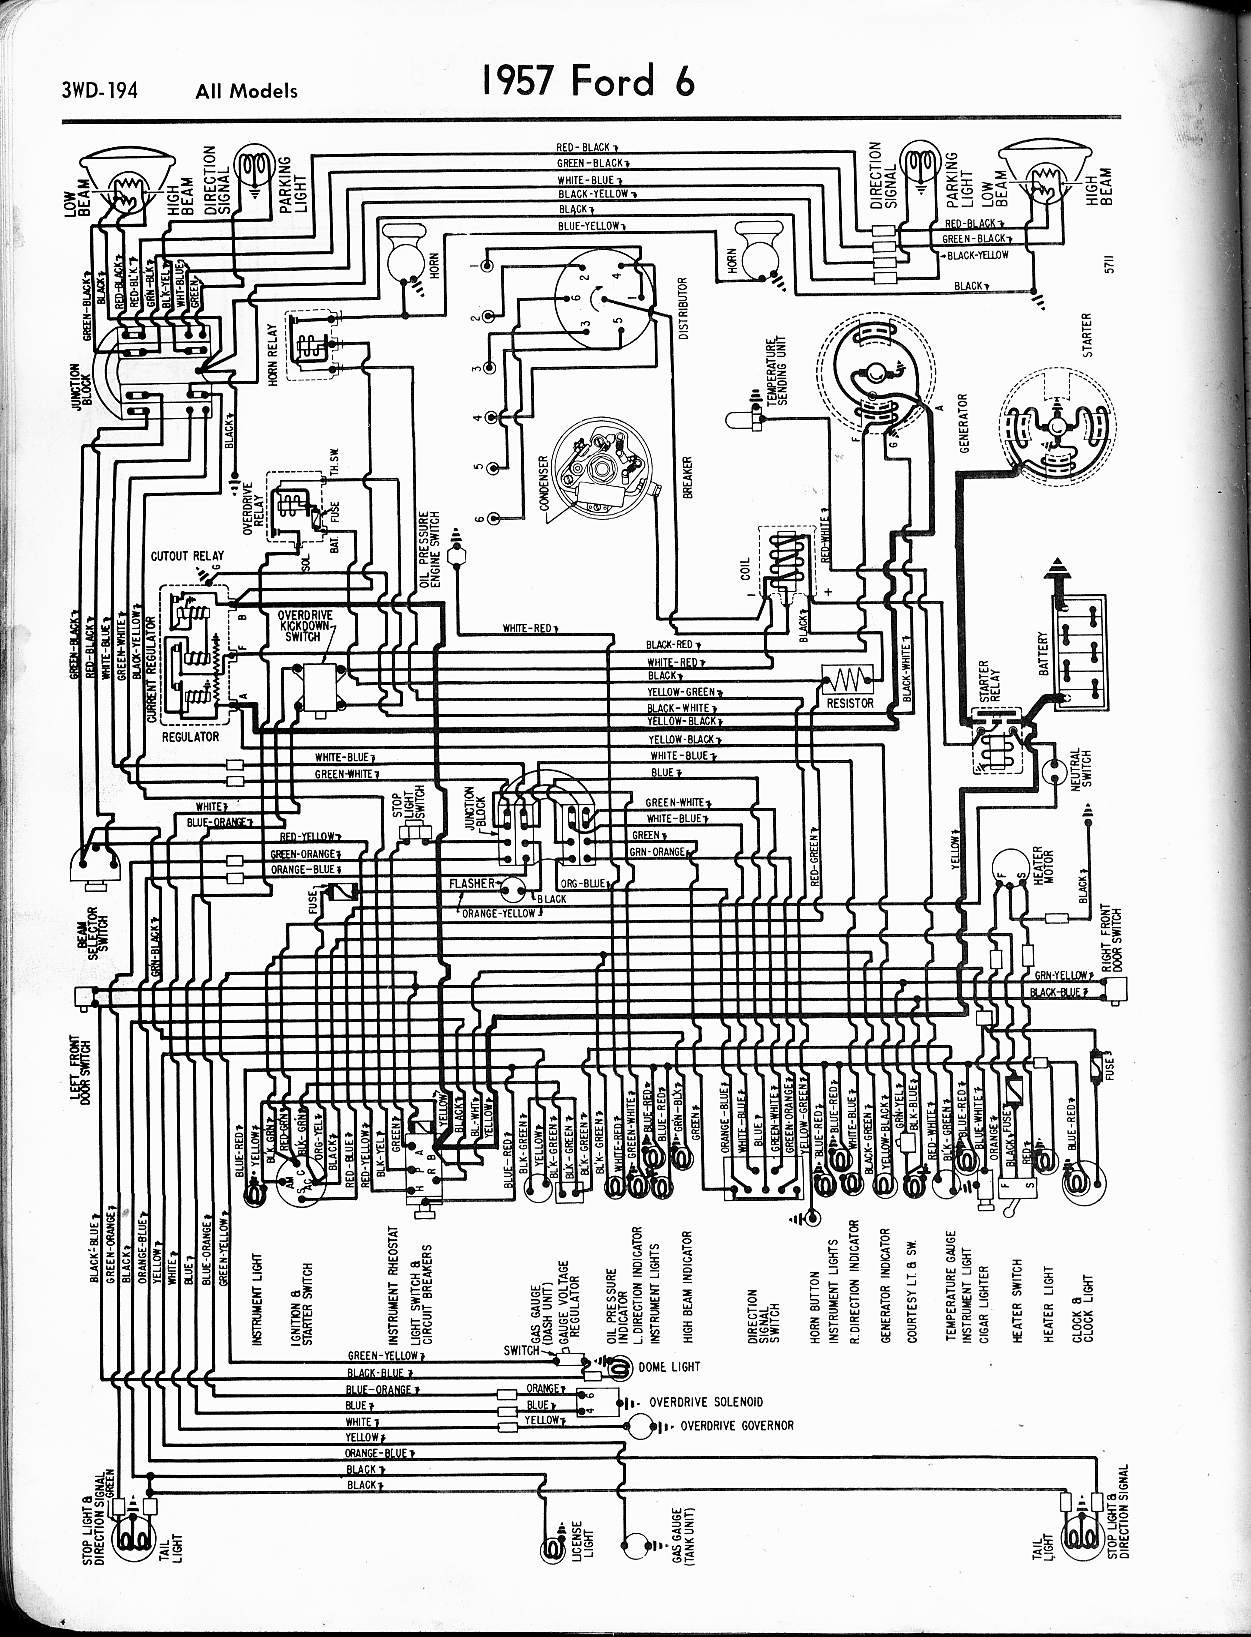 hight resolution of 1954 ford f100 wiring diagram likewise 1965 ford galaxie wiring rh bsmdot co ford mirror wiring